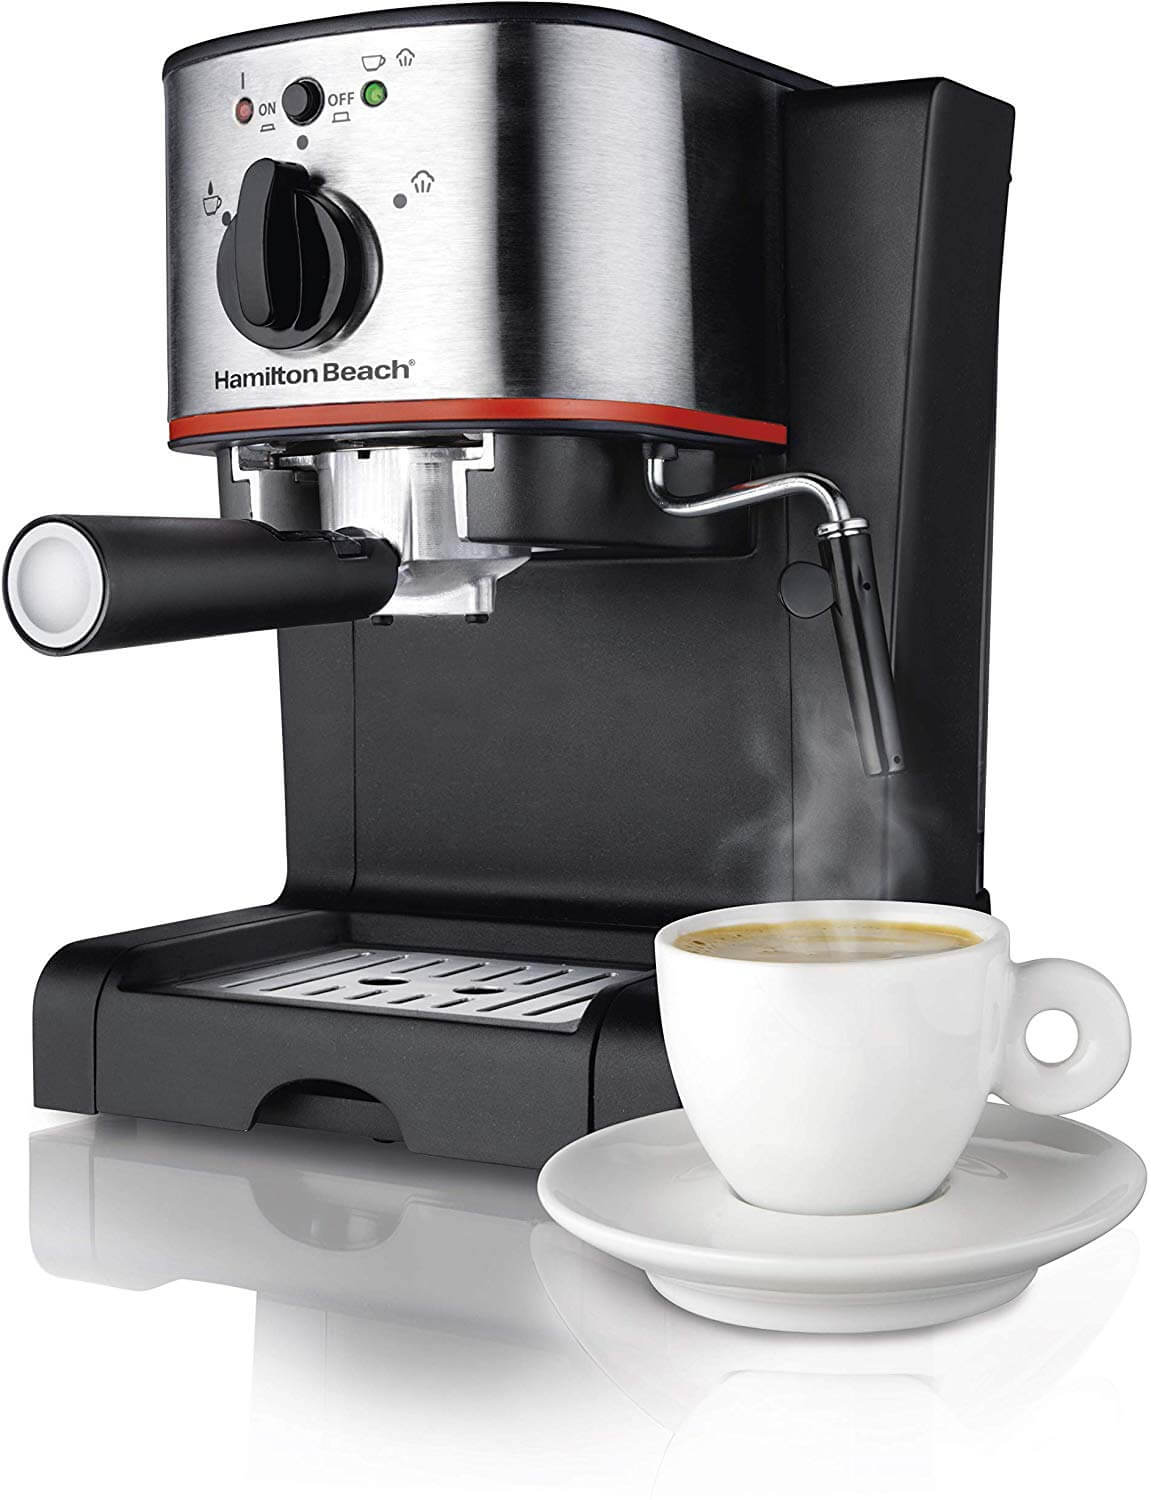 Hamilton Beach Espresso, Latte and Cappuccino Machine 40792